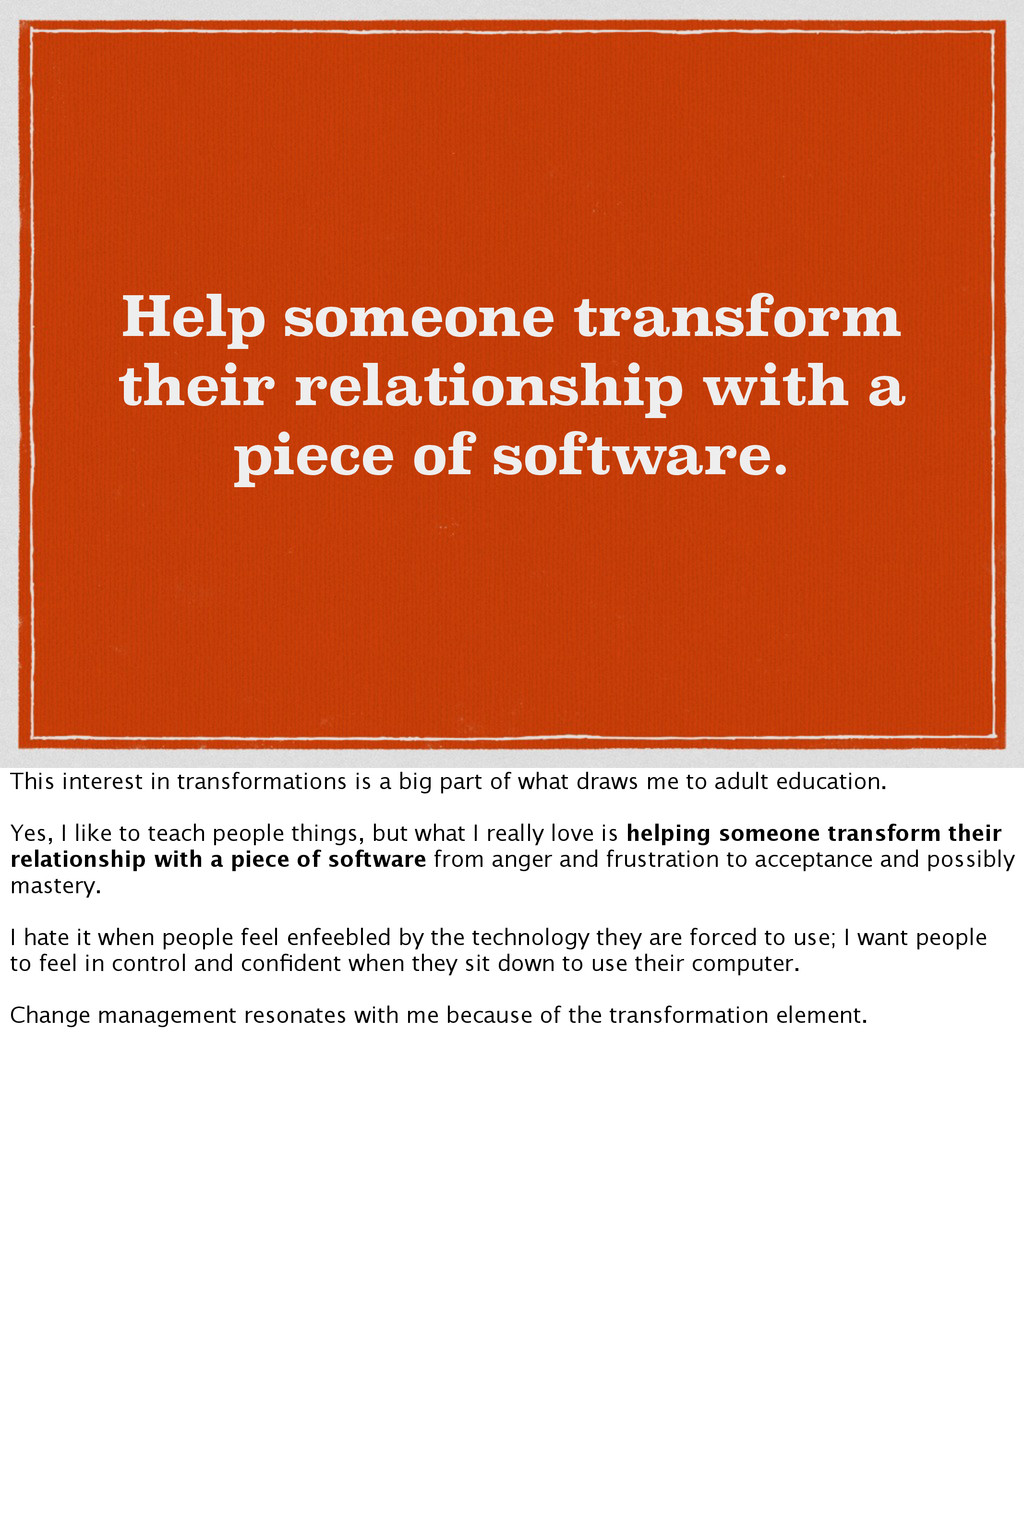 Help someone transform their relationship with ...